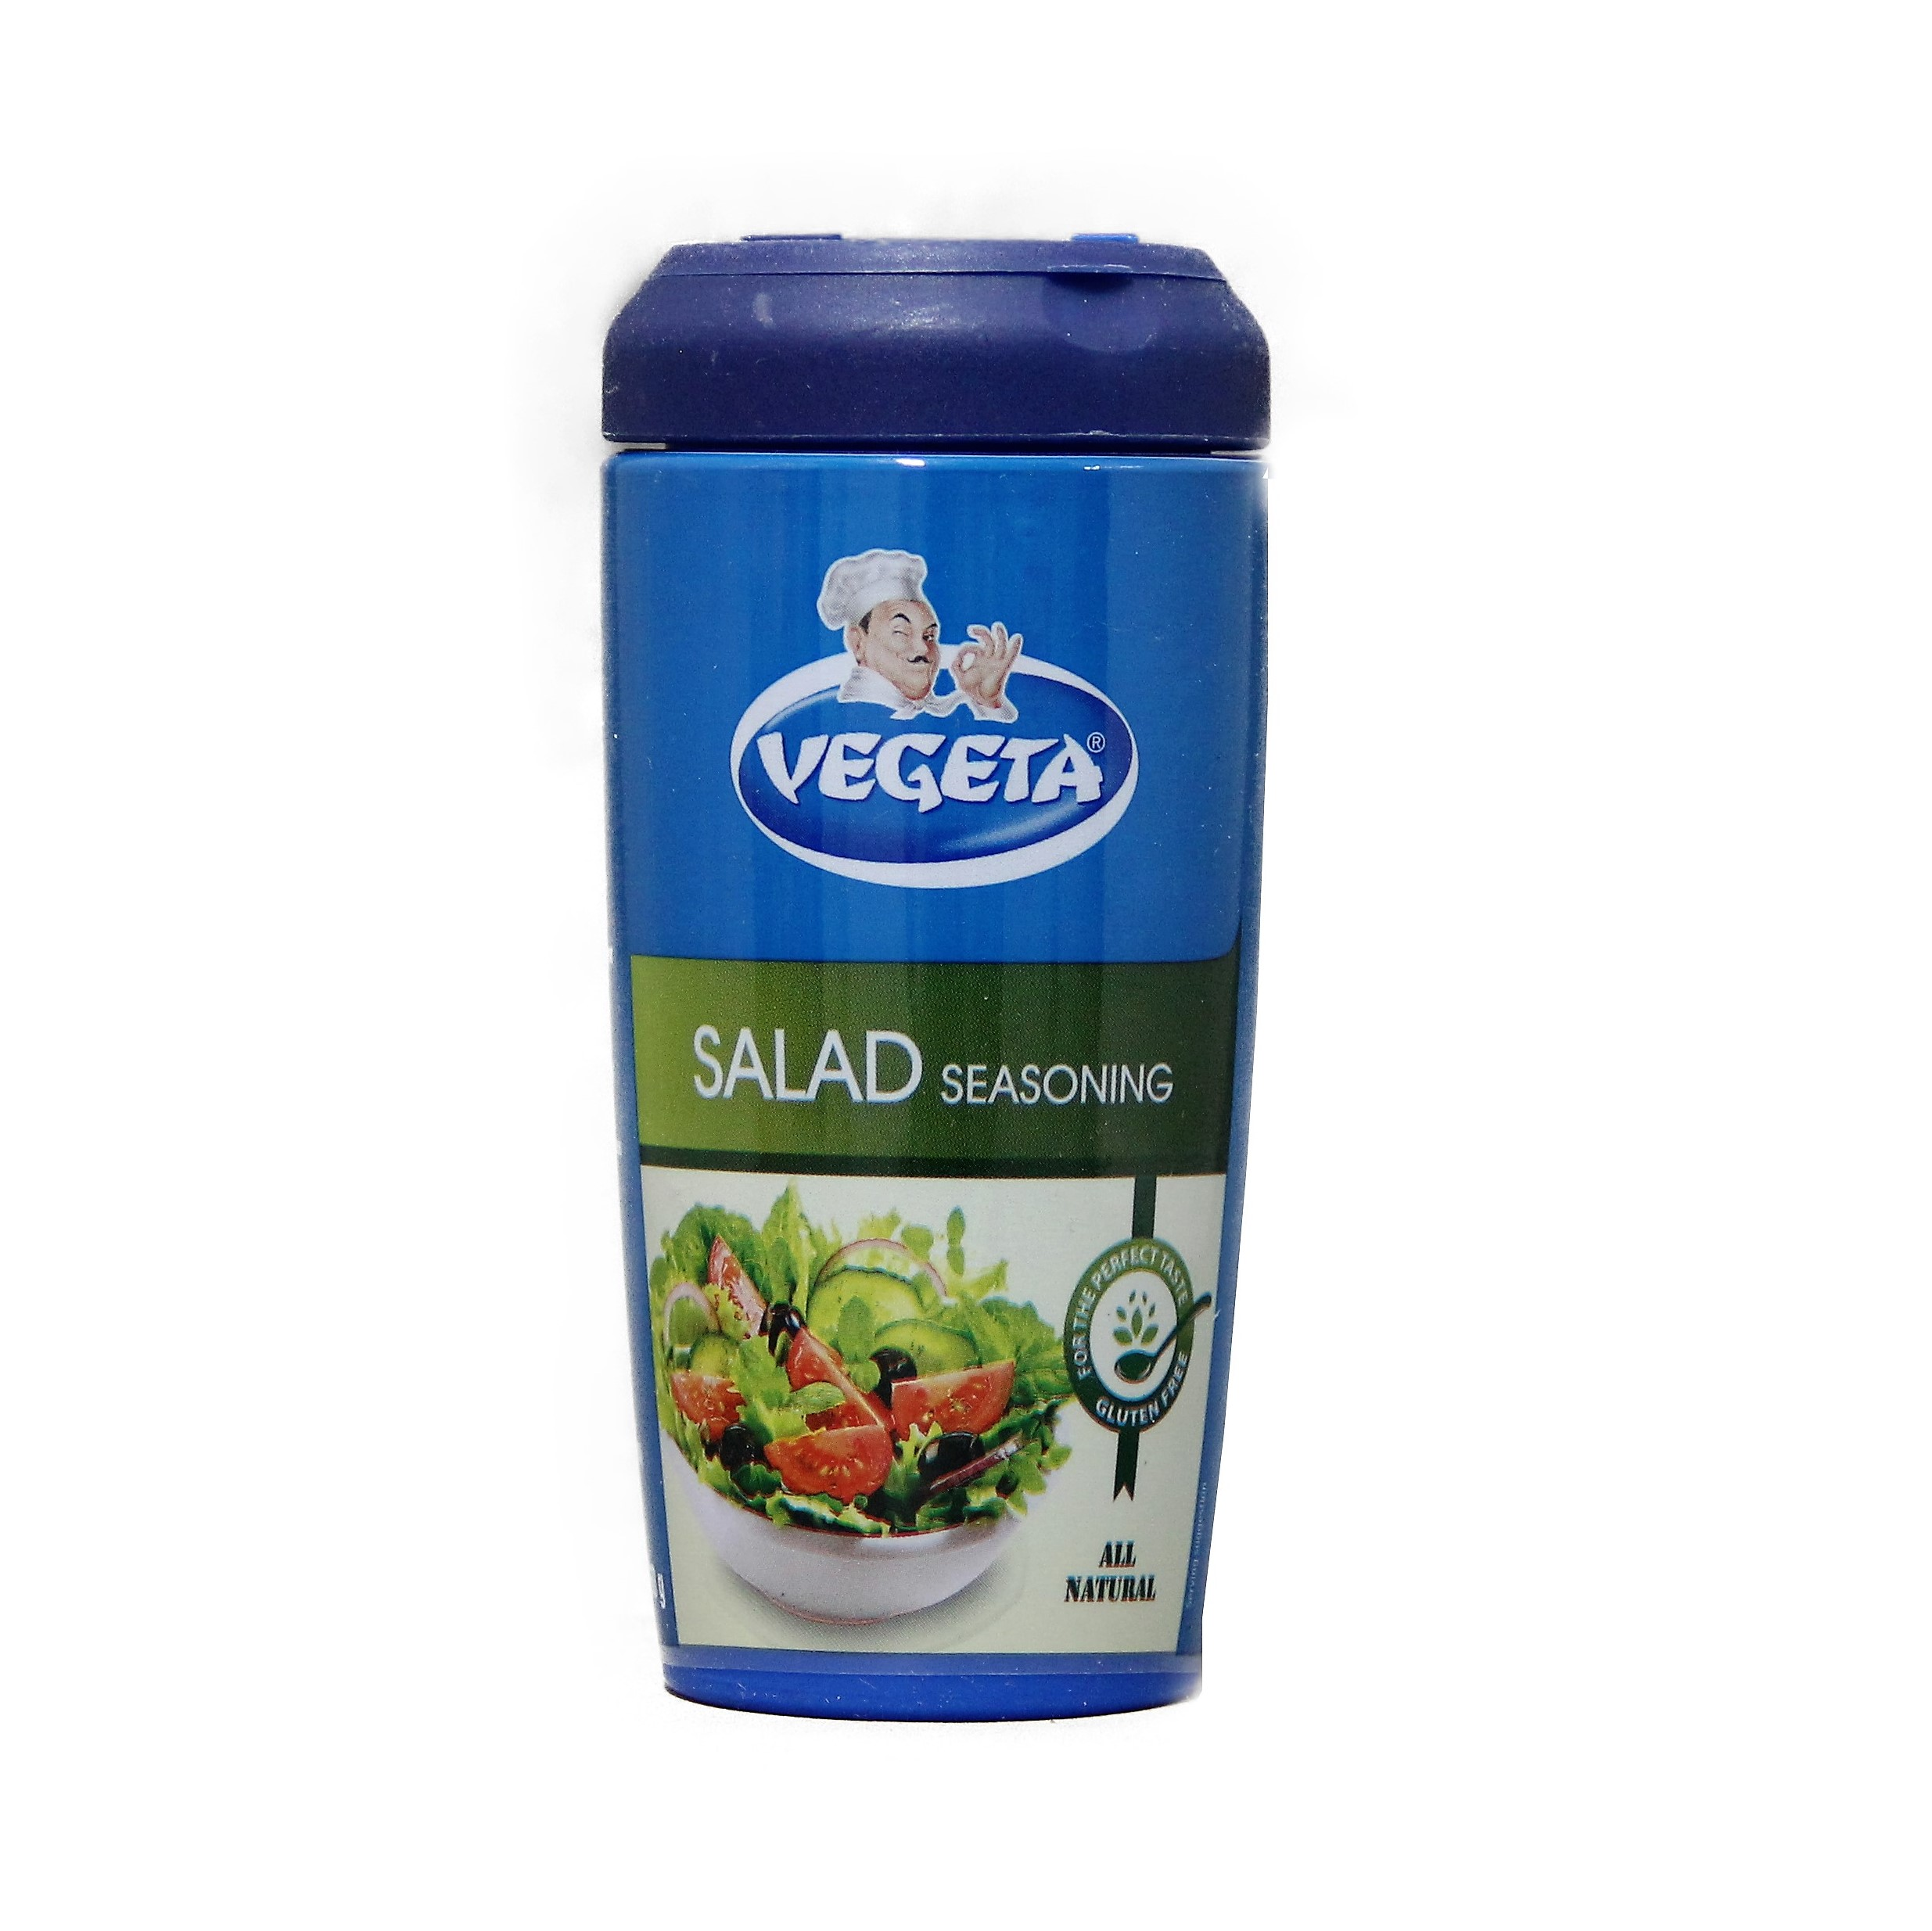 346 salad seasoning